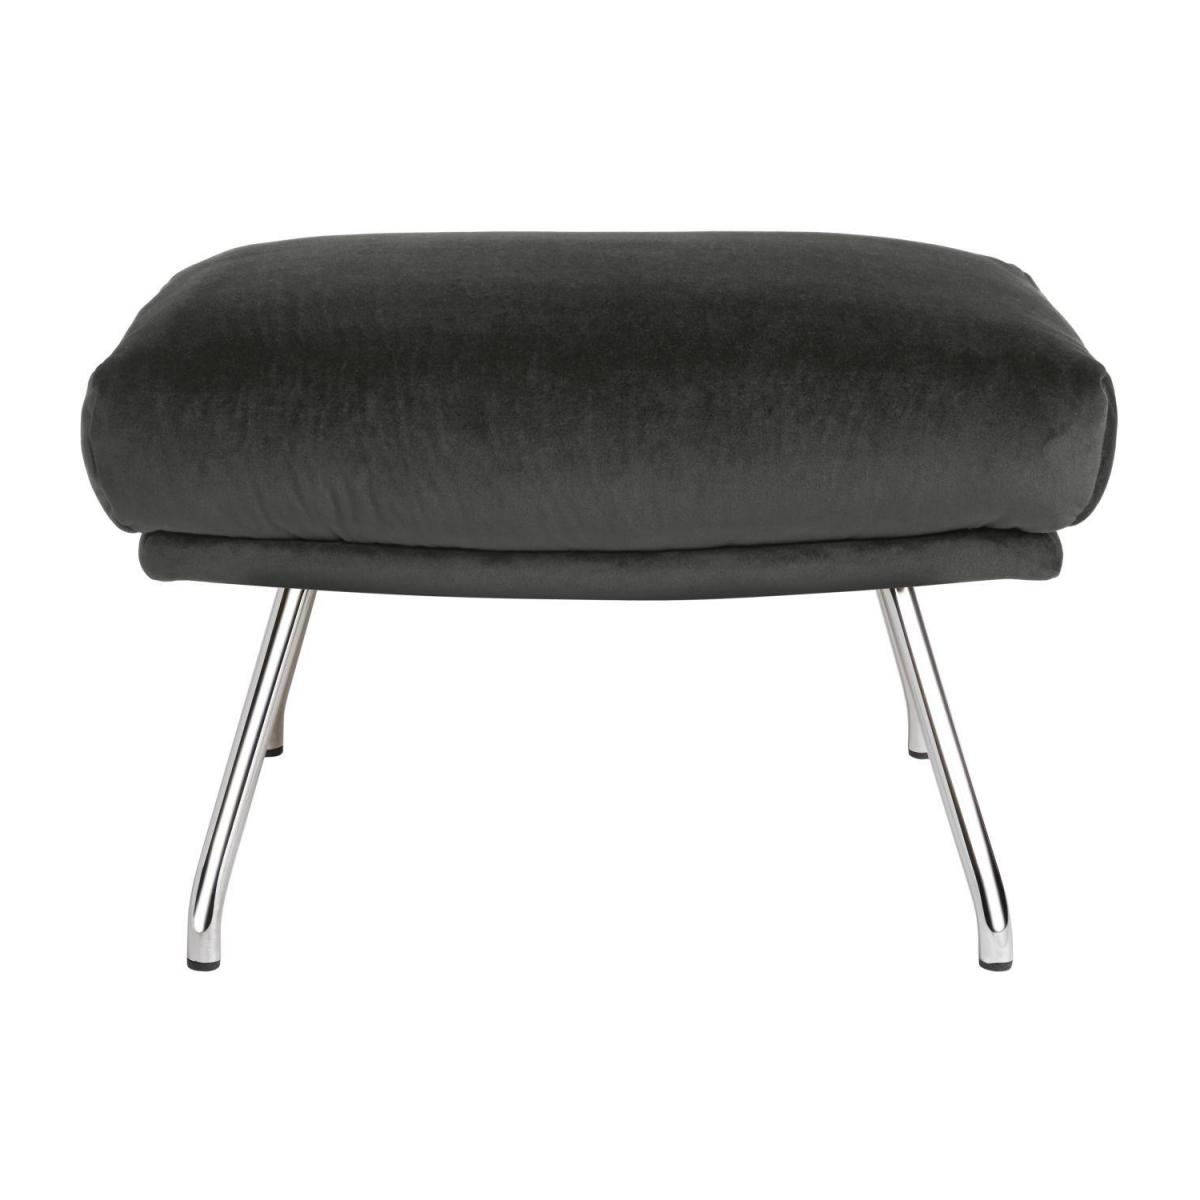 Footstool in Super Velvet fabric, silver grey with chromed metal legs n°2